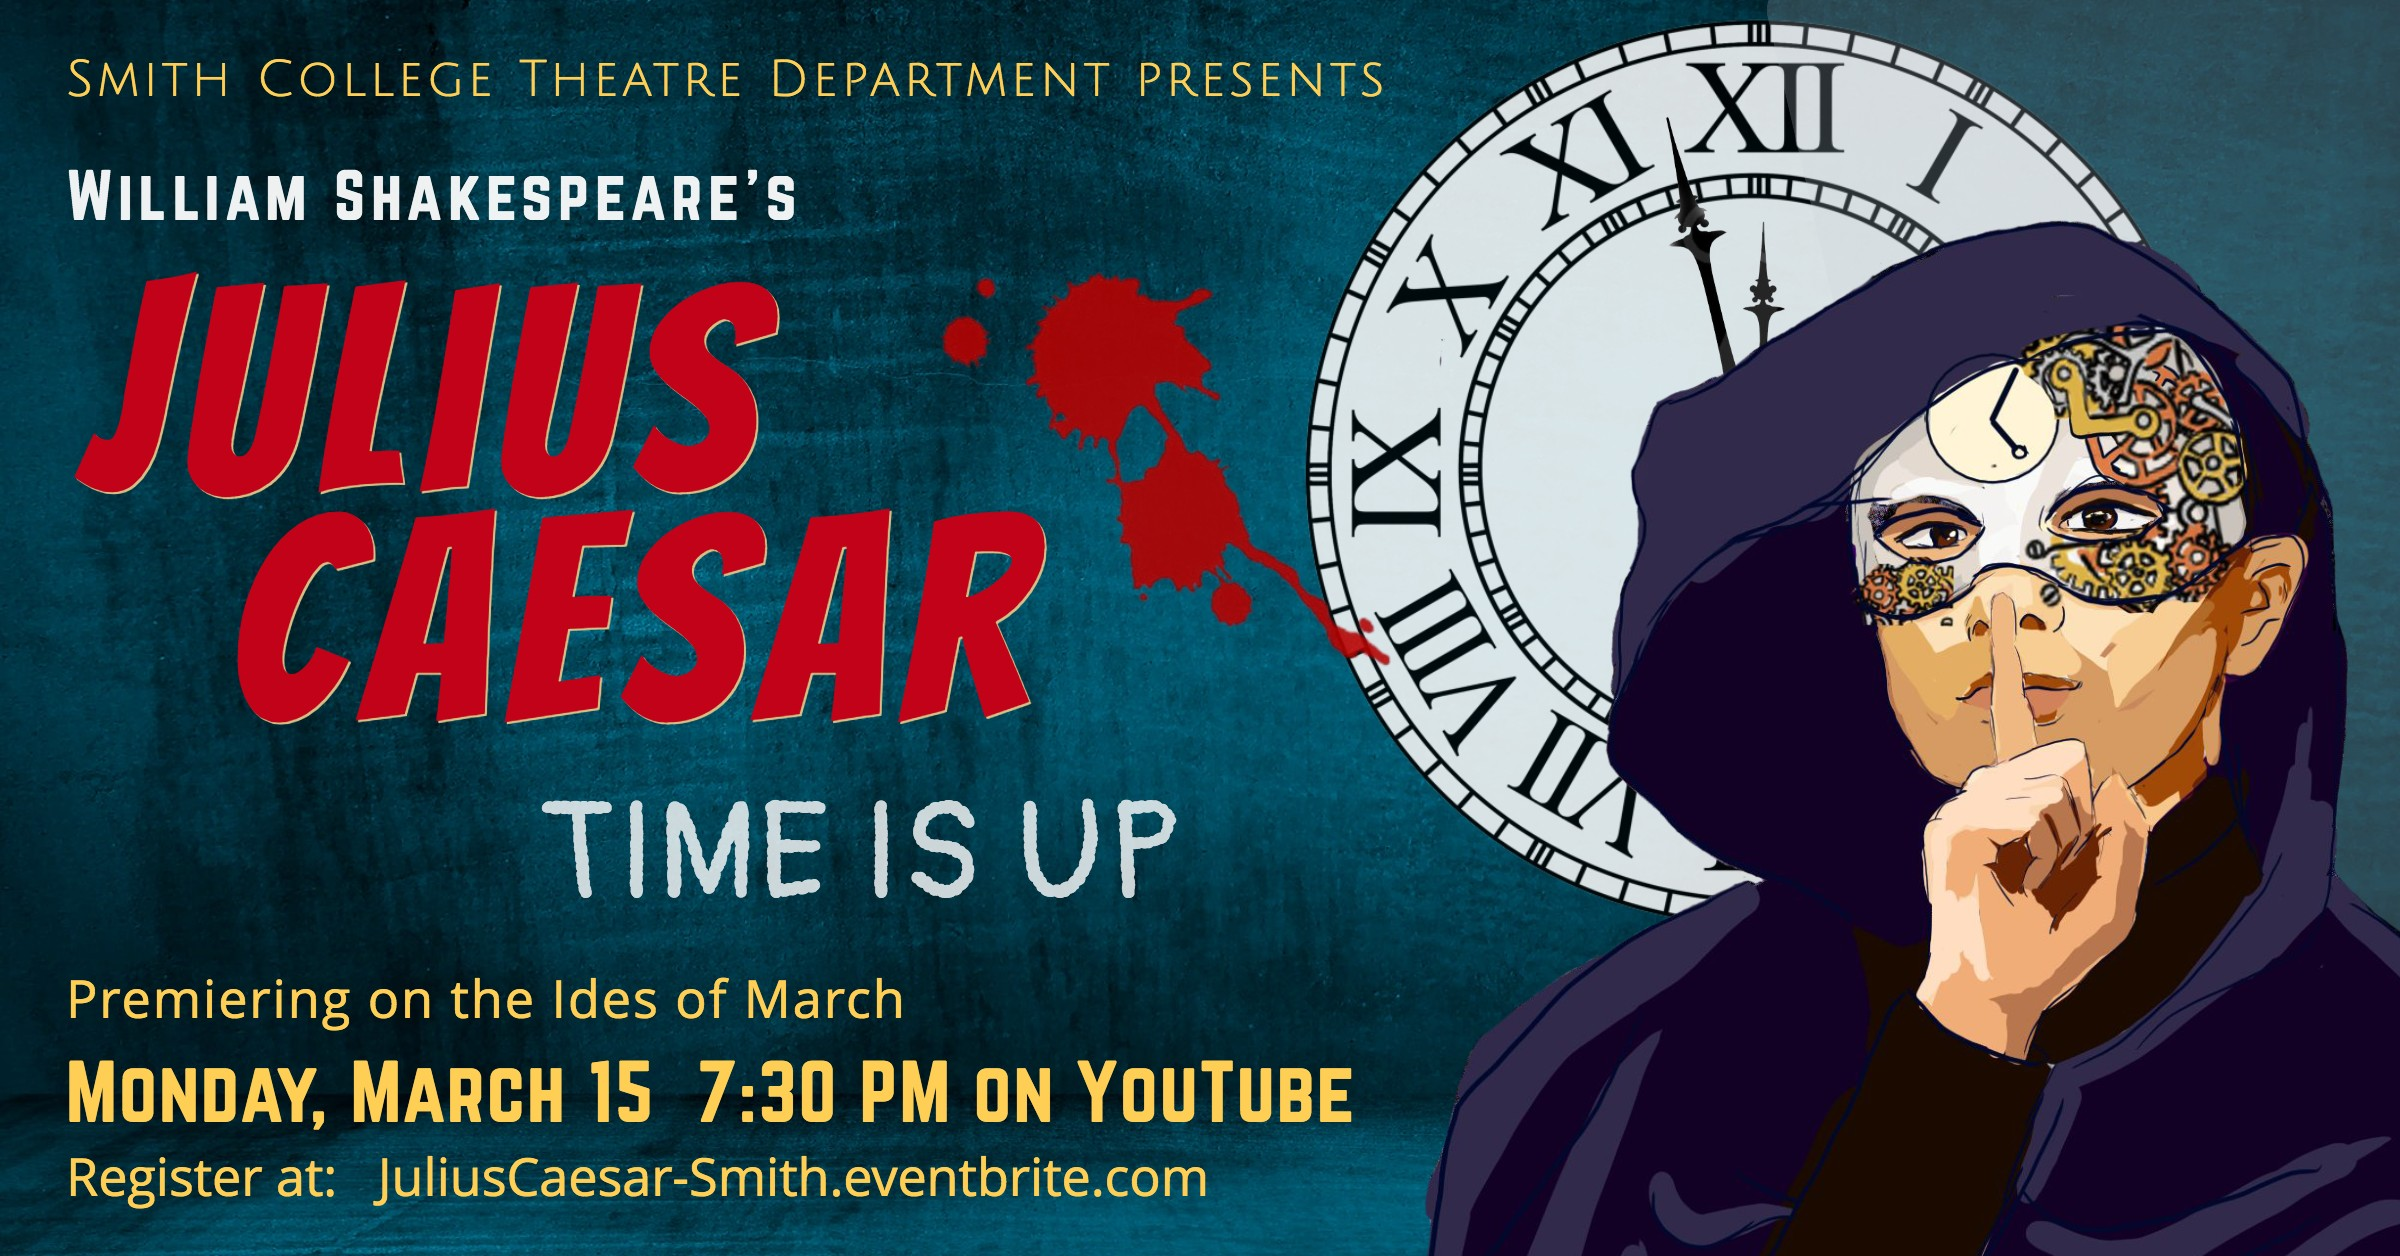 """Smith College Department of Theatre Presents William Shakespeare's Julius Caesar, """"Time is Up"""", Premiering on the Ides of March, Monday March 15 at 7:30 p.m."""